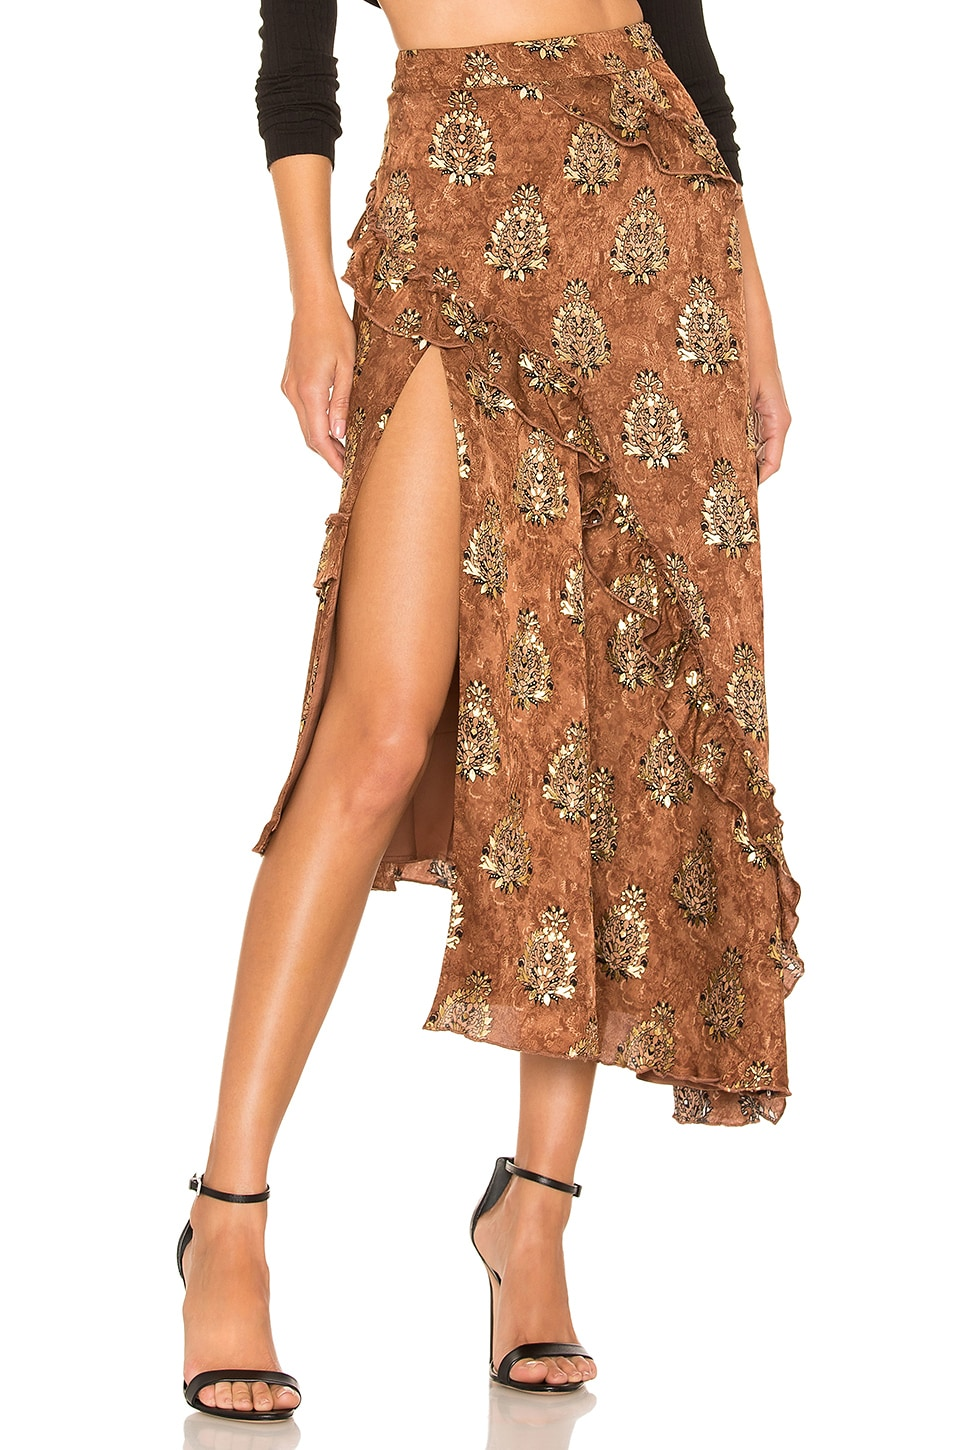 MAJORELLE Tallulah Skirt in Arabian Copper